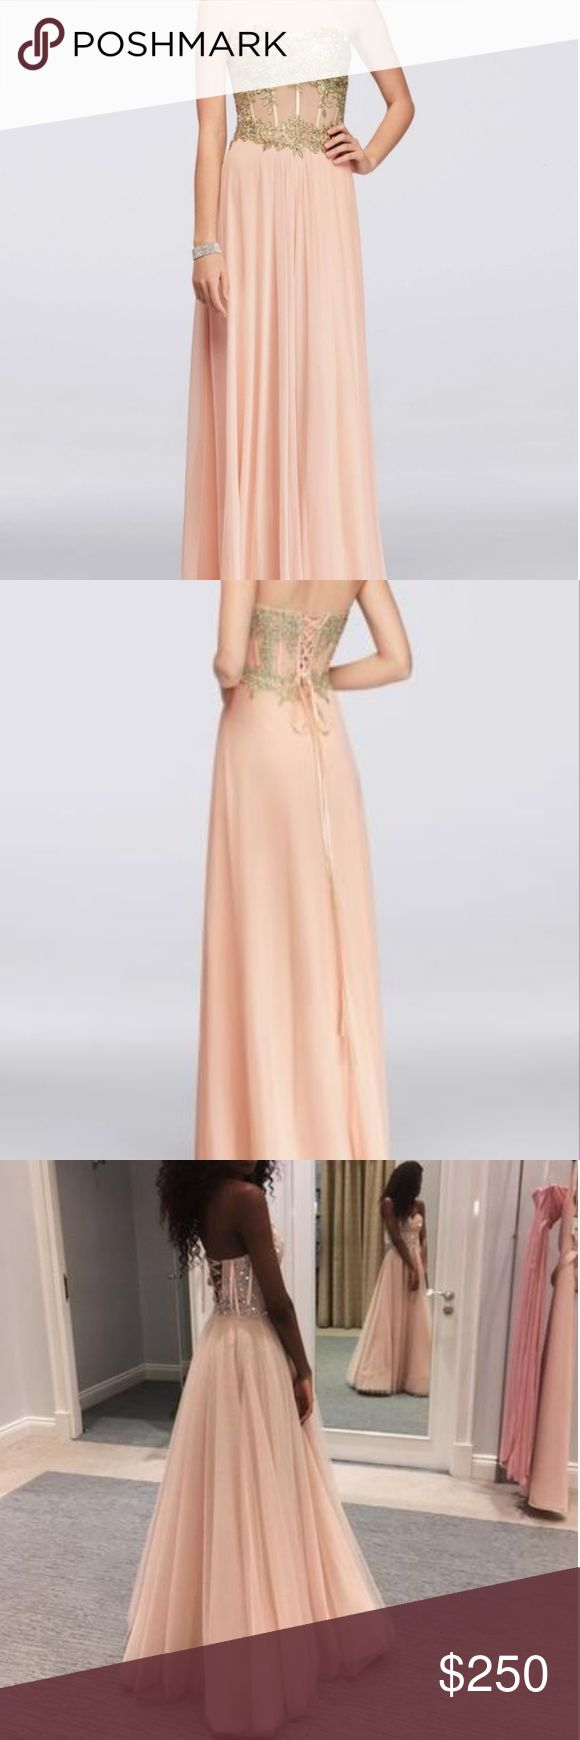 Peach corset dress Long jersey gown is richly appliqued with gold lace, and features a corset-style, sheer illusion bodice complete with boning for structure. Blondie Nites Dresses Strapless